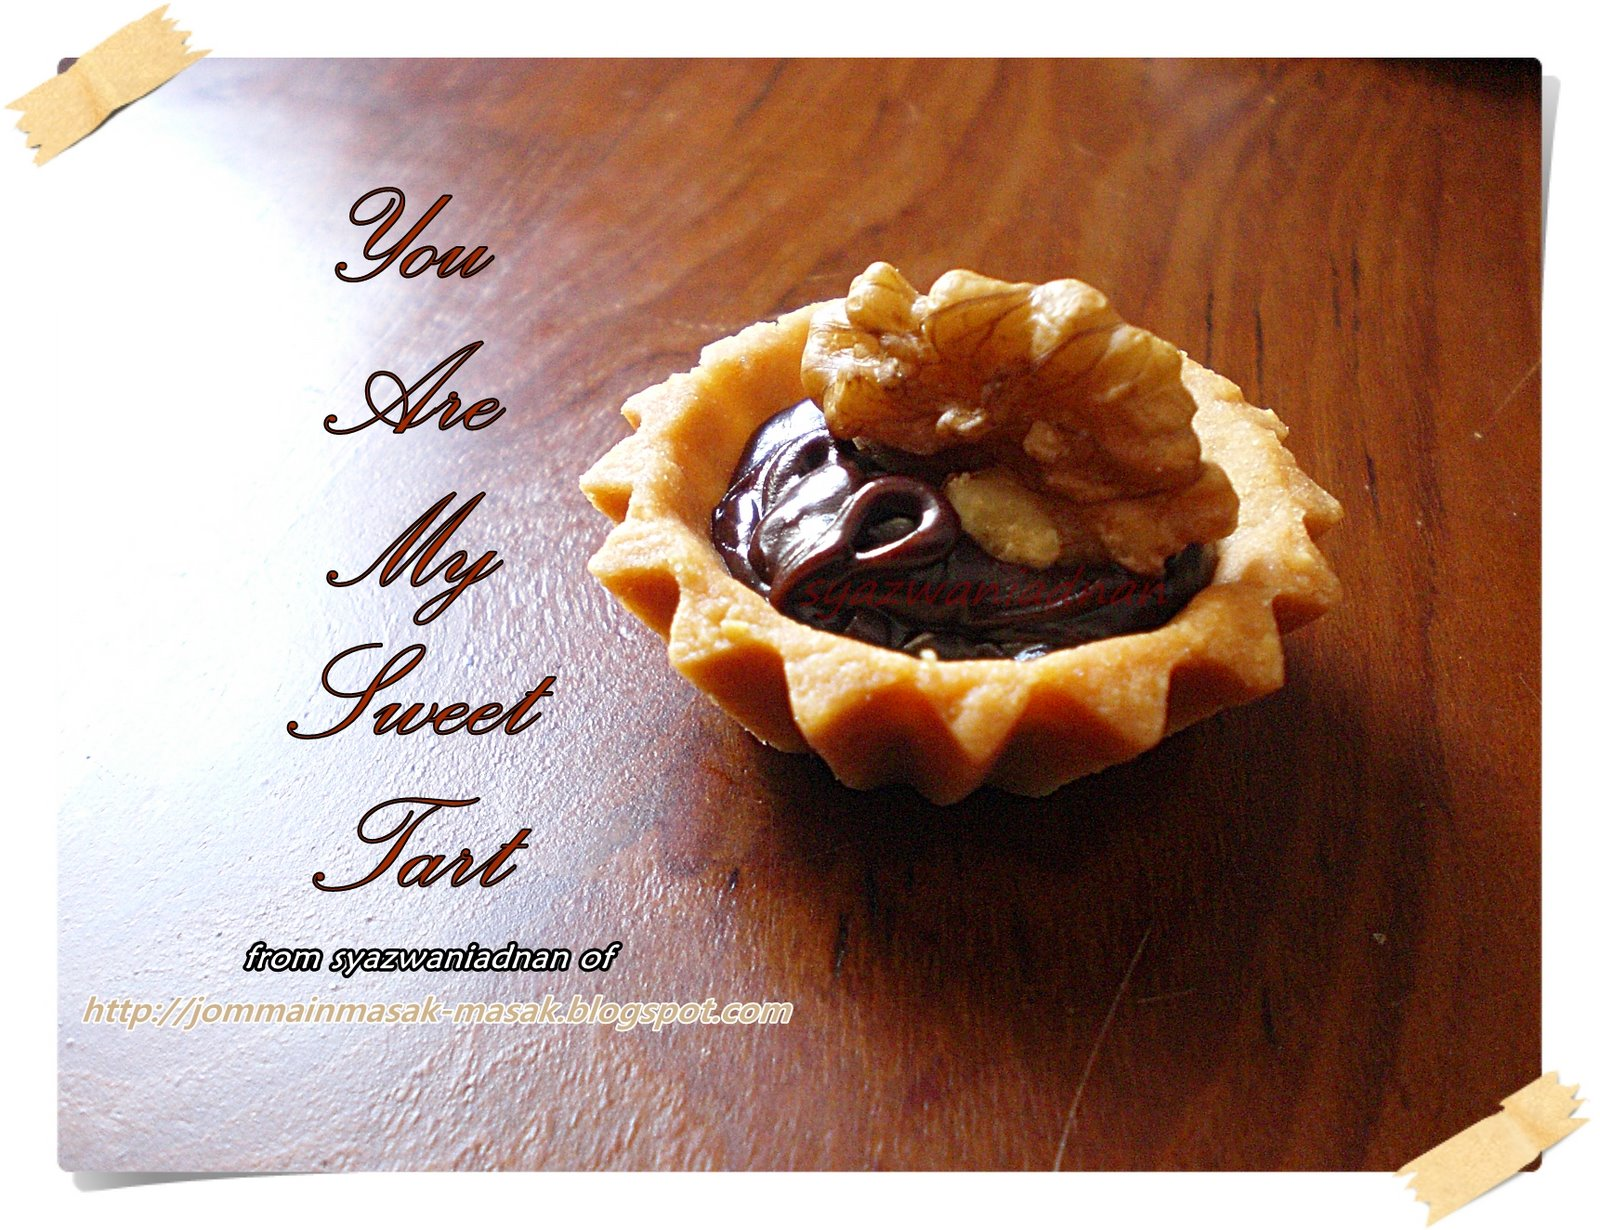 You Are My Sweet Tart from || syazwaniadnan ||